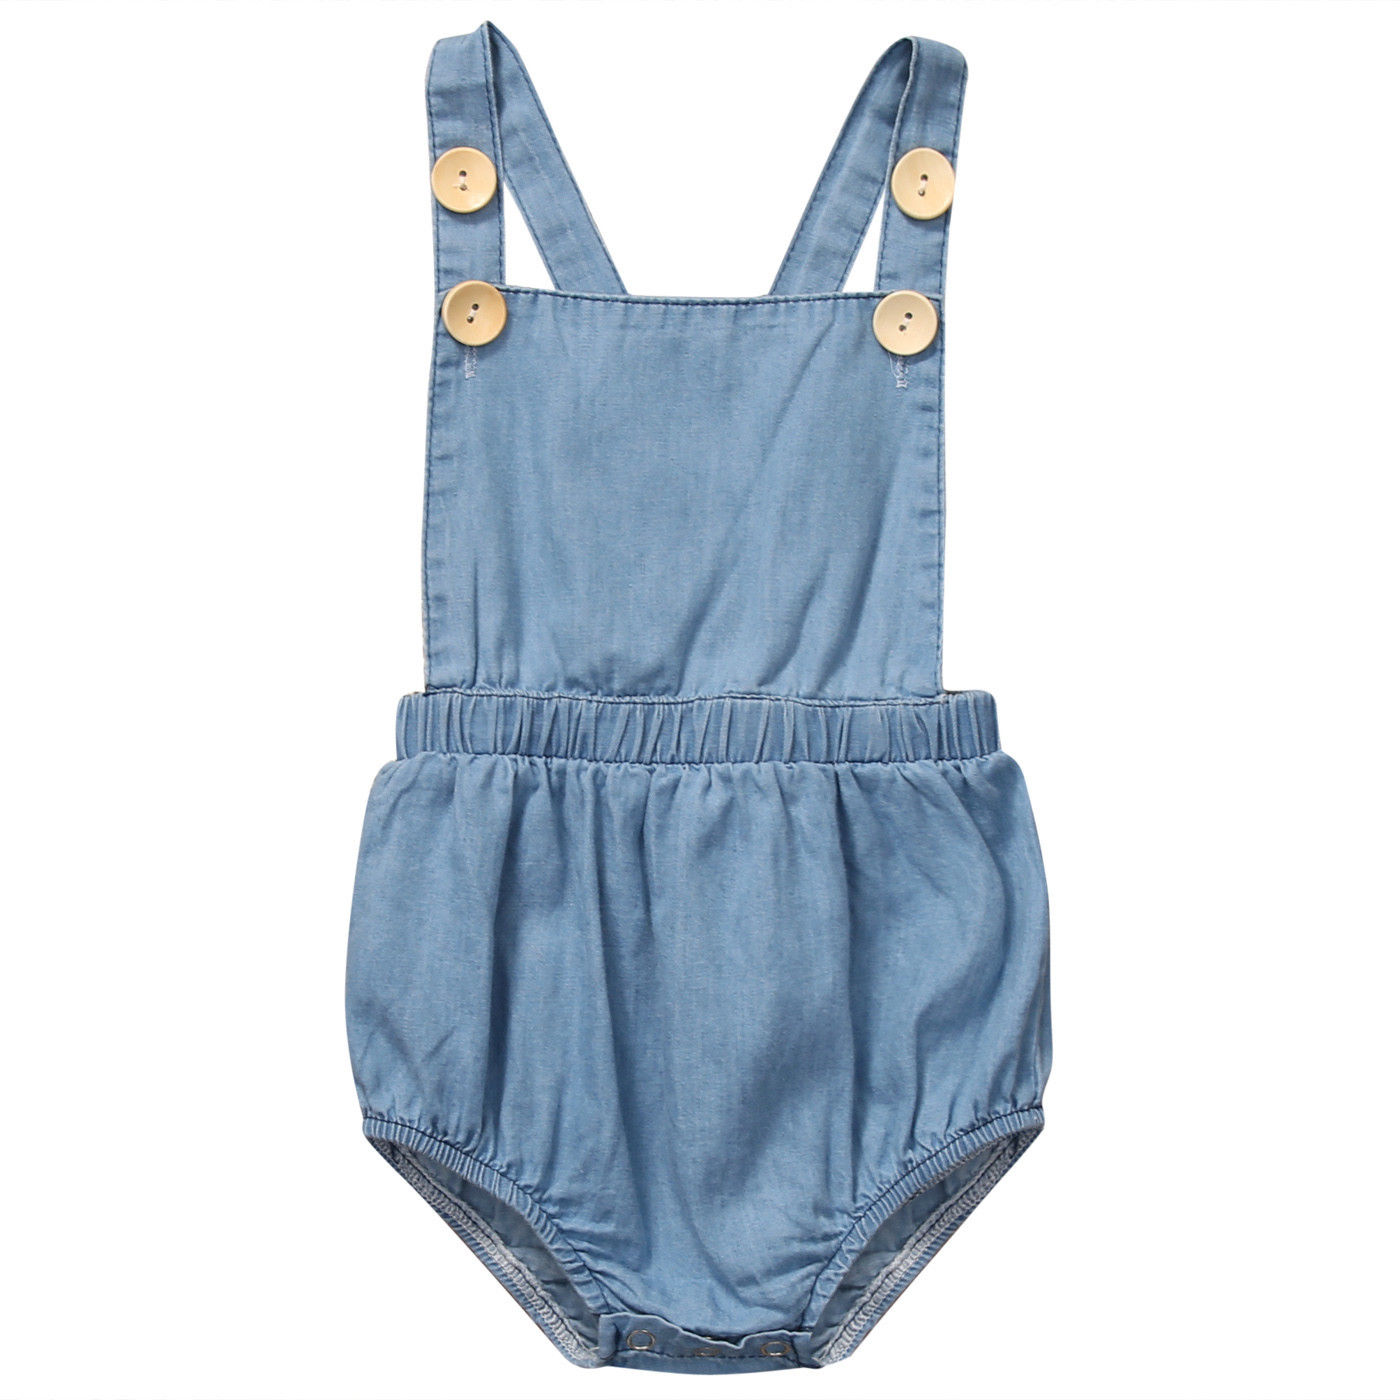 Newborn Baby Girls Denim Romper Jumpsuit Outfits Playsuit Sunsuit One-Pieces Clothes 2pcs ruffles newborn baby clothes 2017 summer princess girls floral dress tops baby bloomers shorts bottom outfits sunsuit 0 24m